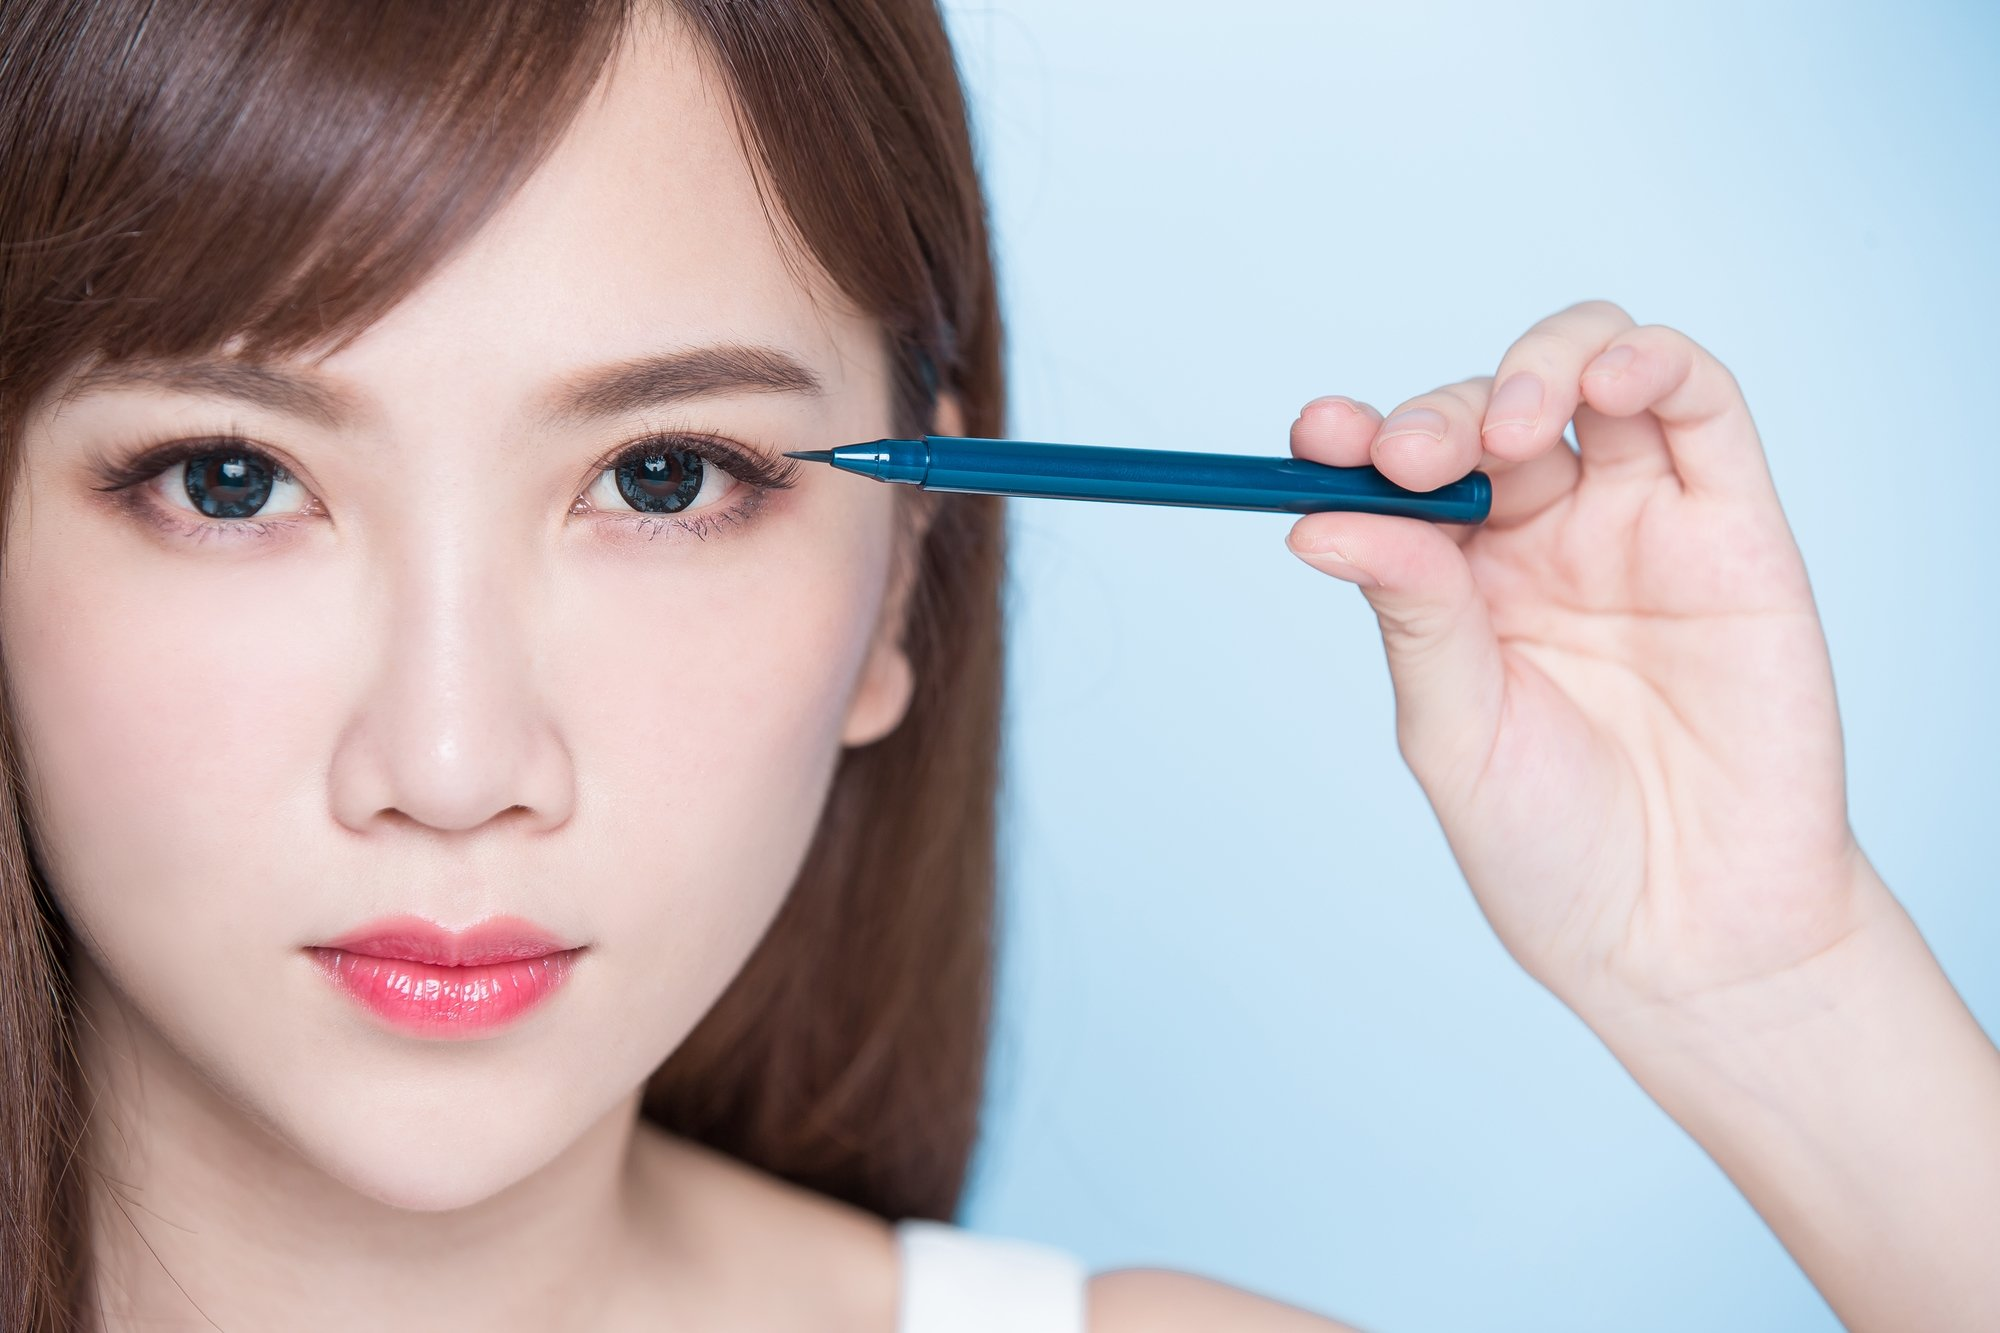 what no eyeliner makeup 1.jpg?resize=412,232 - デカ目メイクで目力アップ